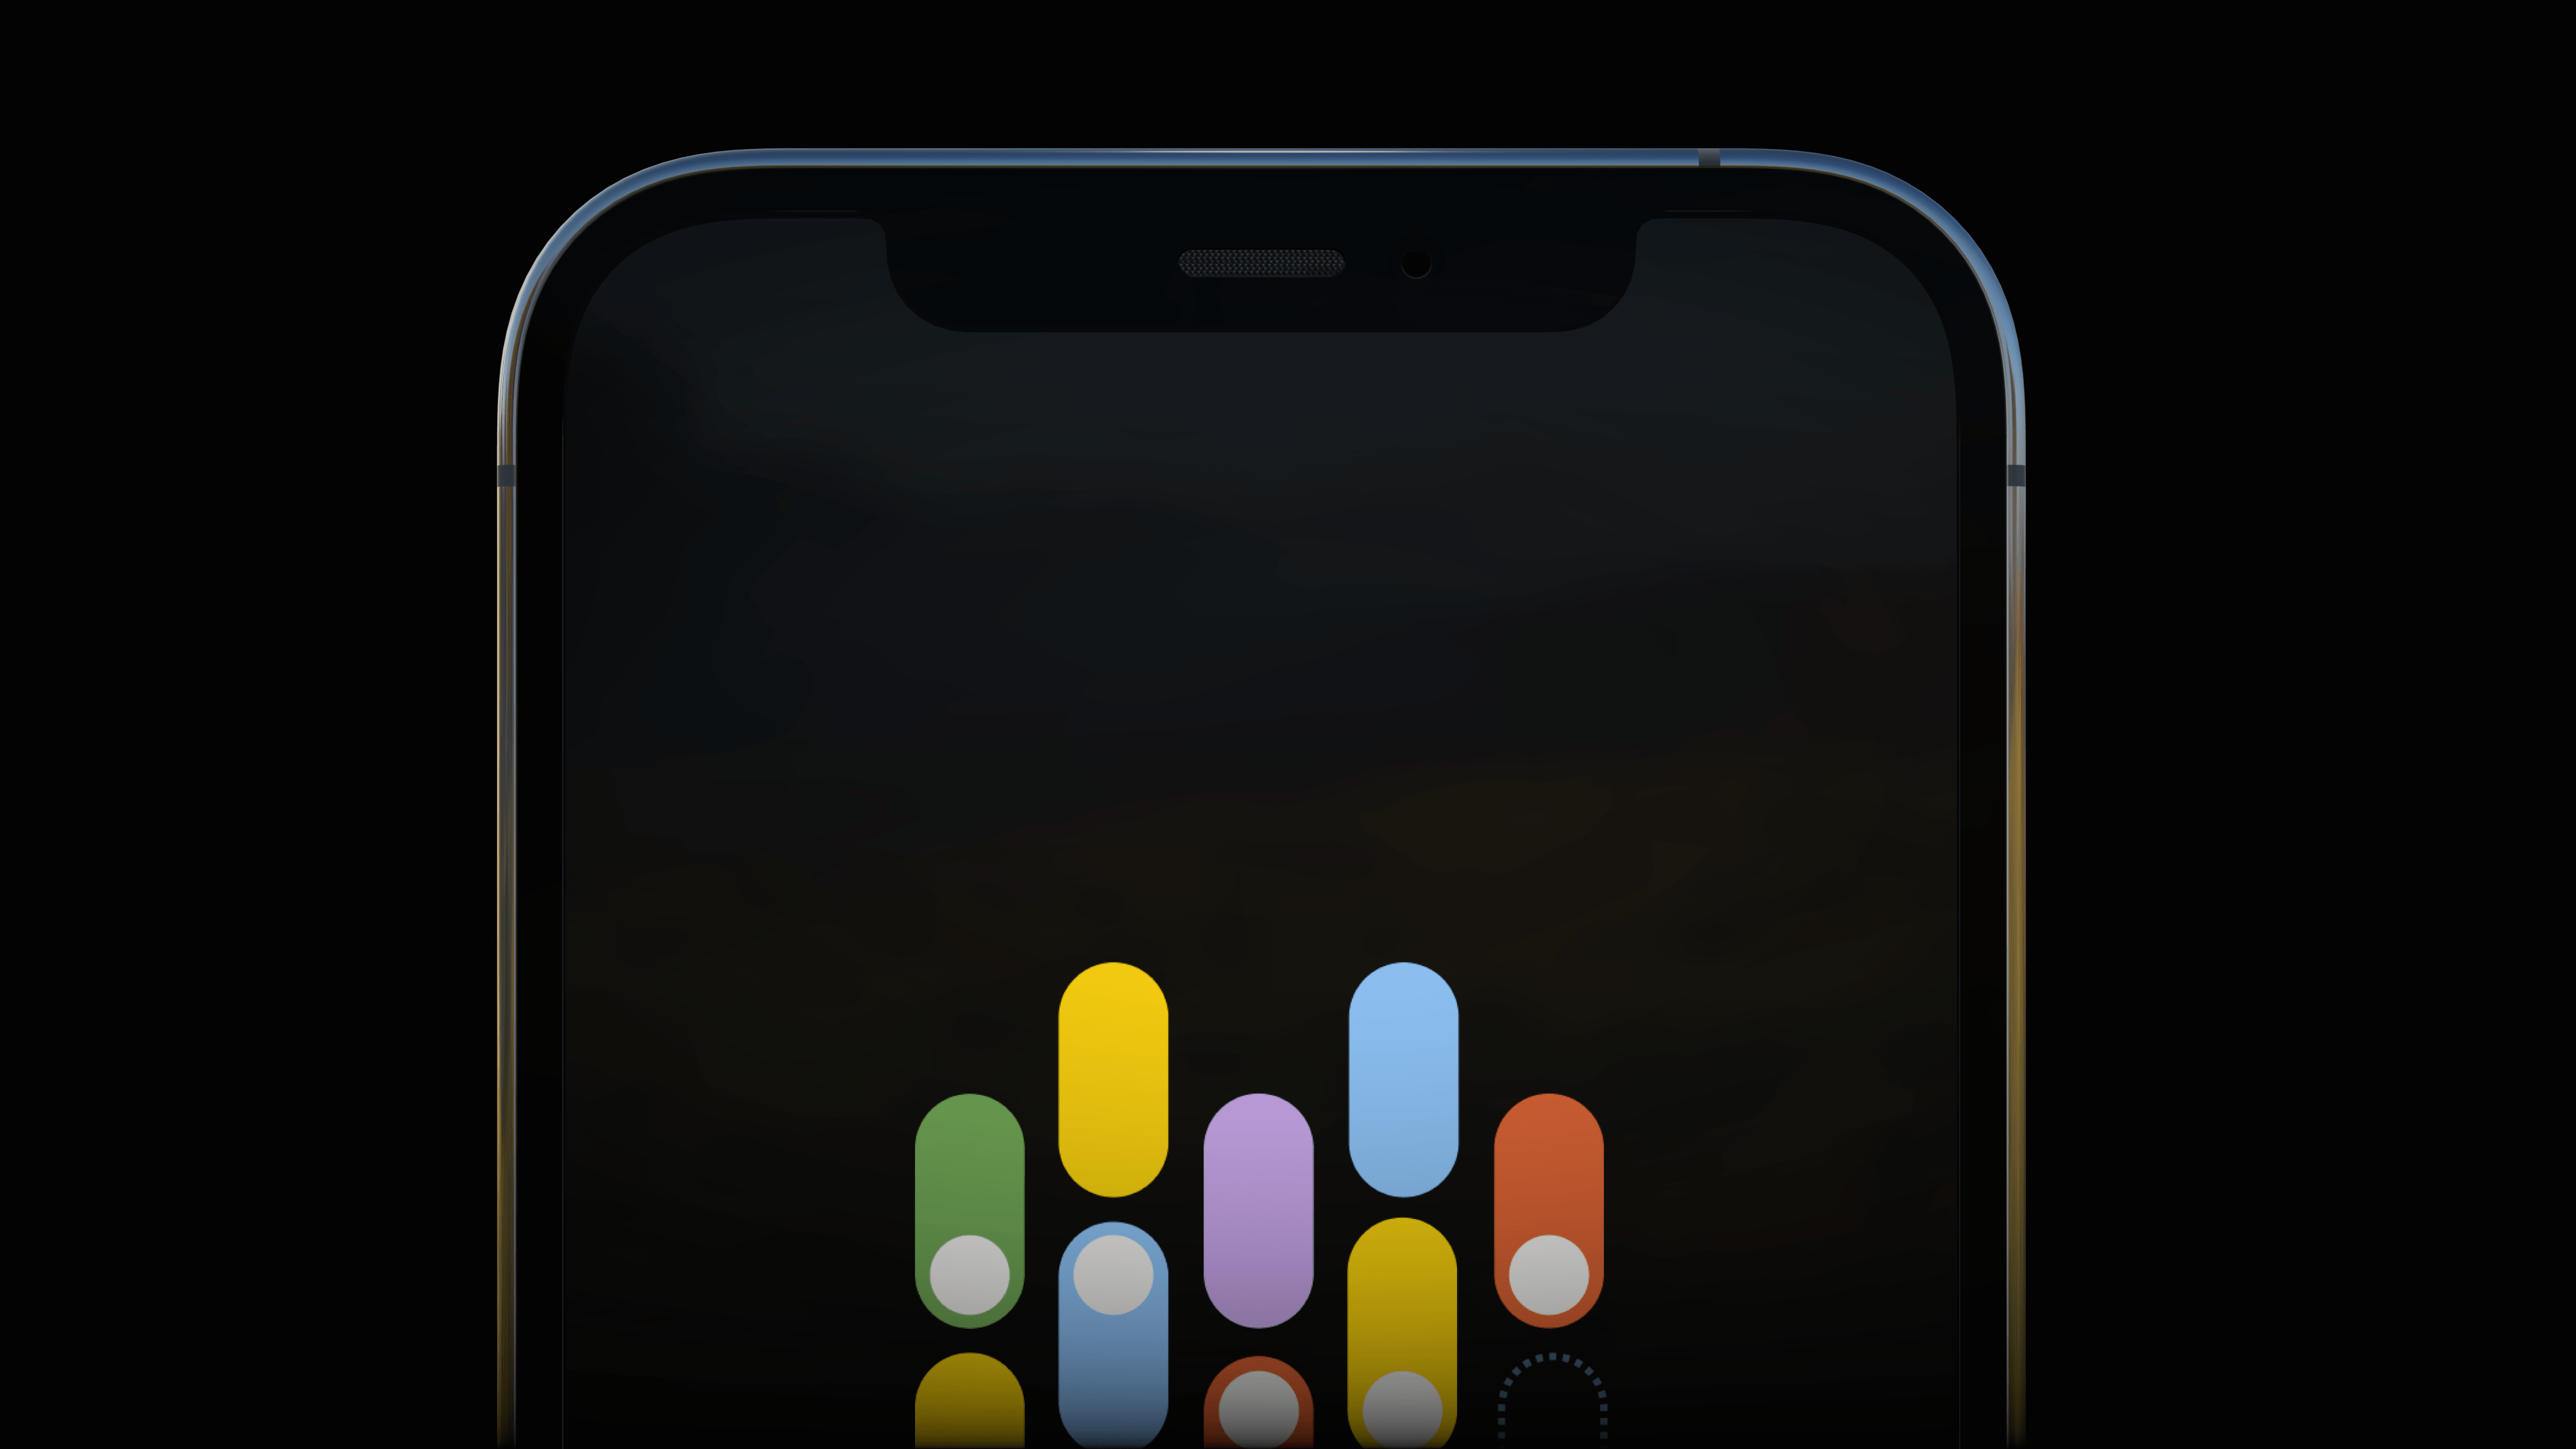 iPhone 12 Pro Silver Sunny Day Reflection Mockup